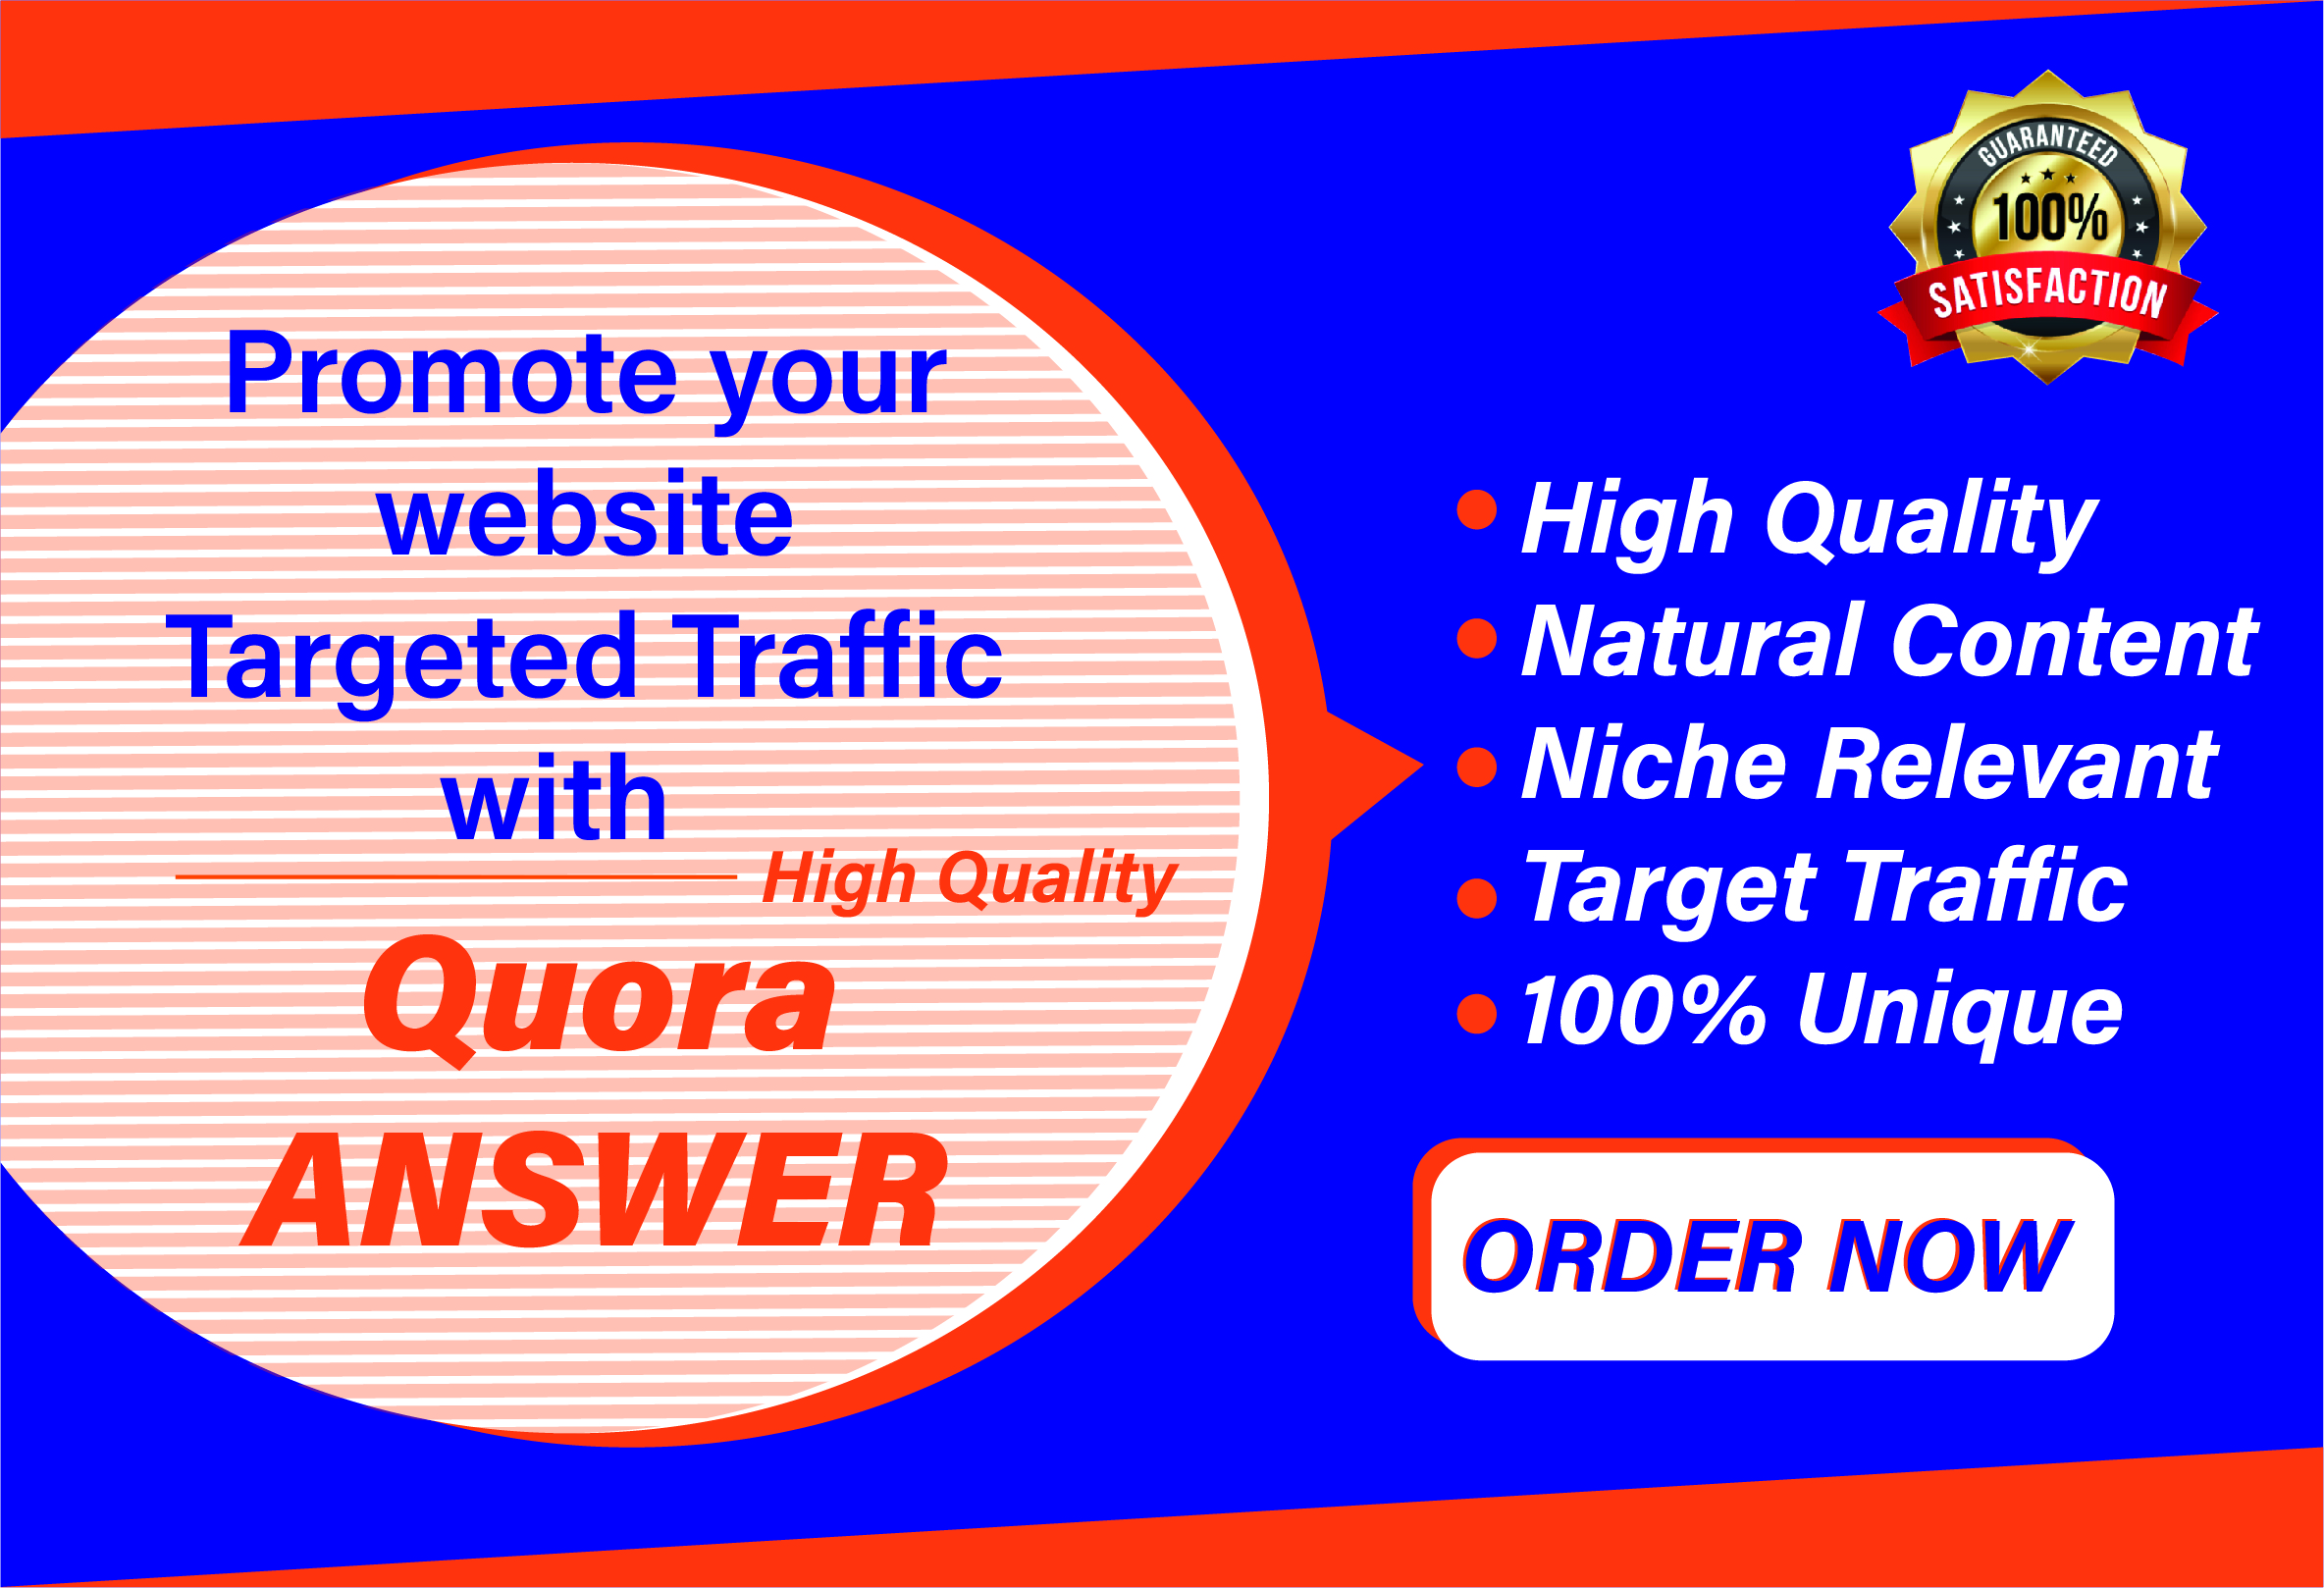 Promote your website traffic with 10 High Quality Quora Answers